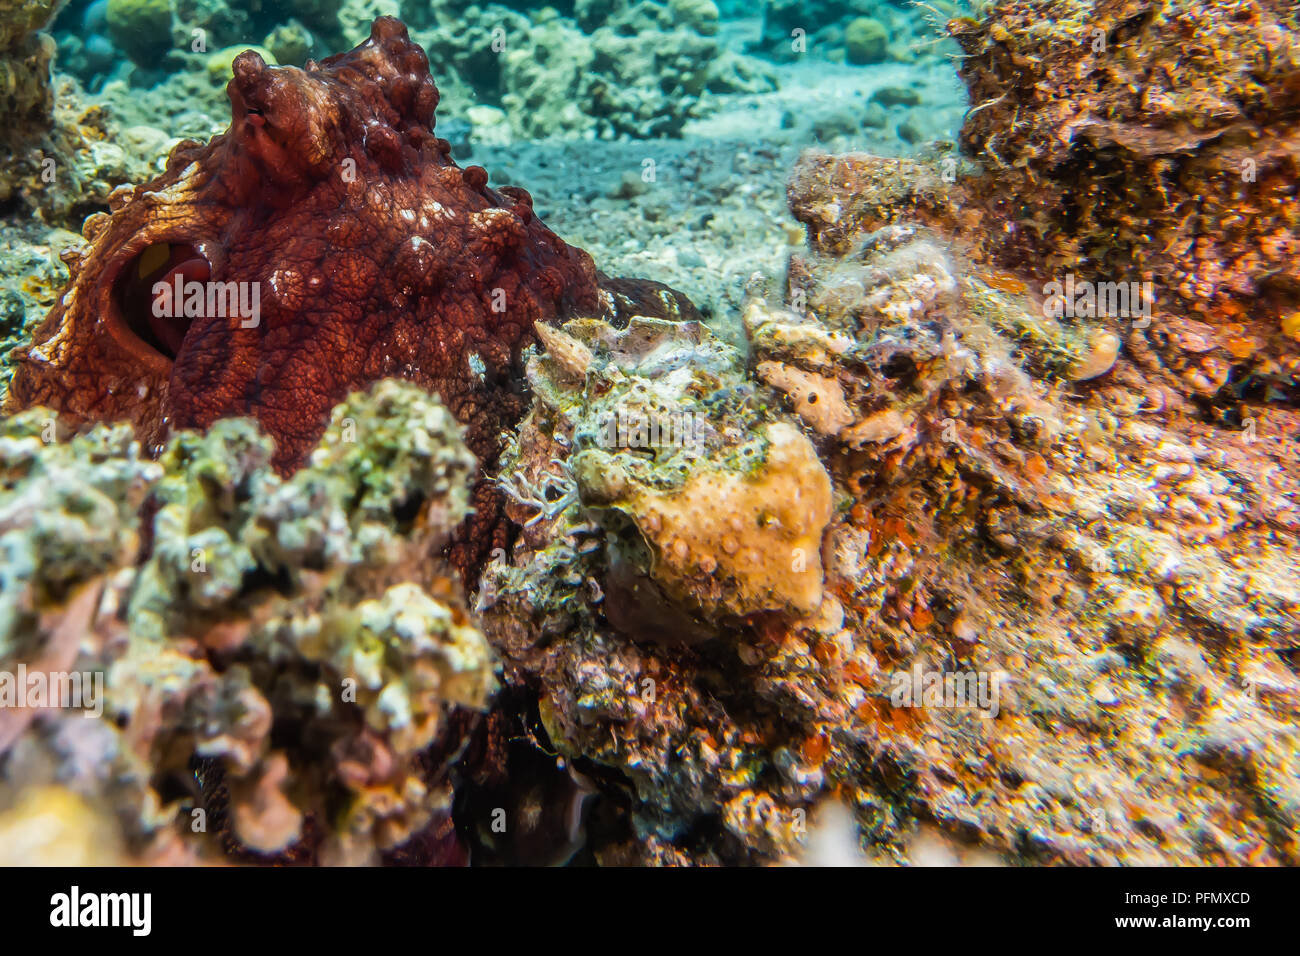 Octopus Camouflage Stock Photos & Octopus Camouflage Stock Images ...